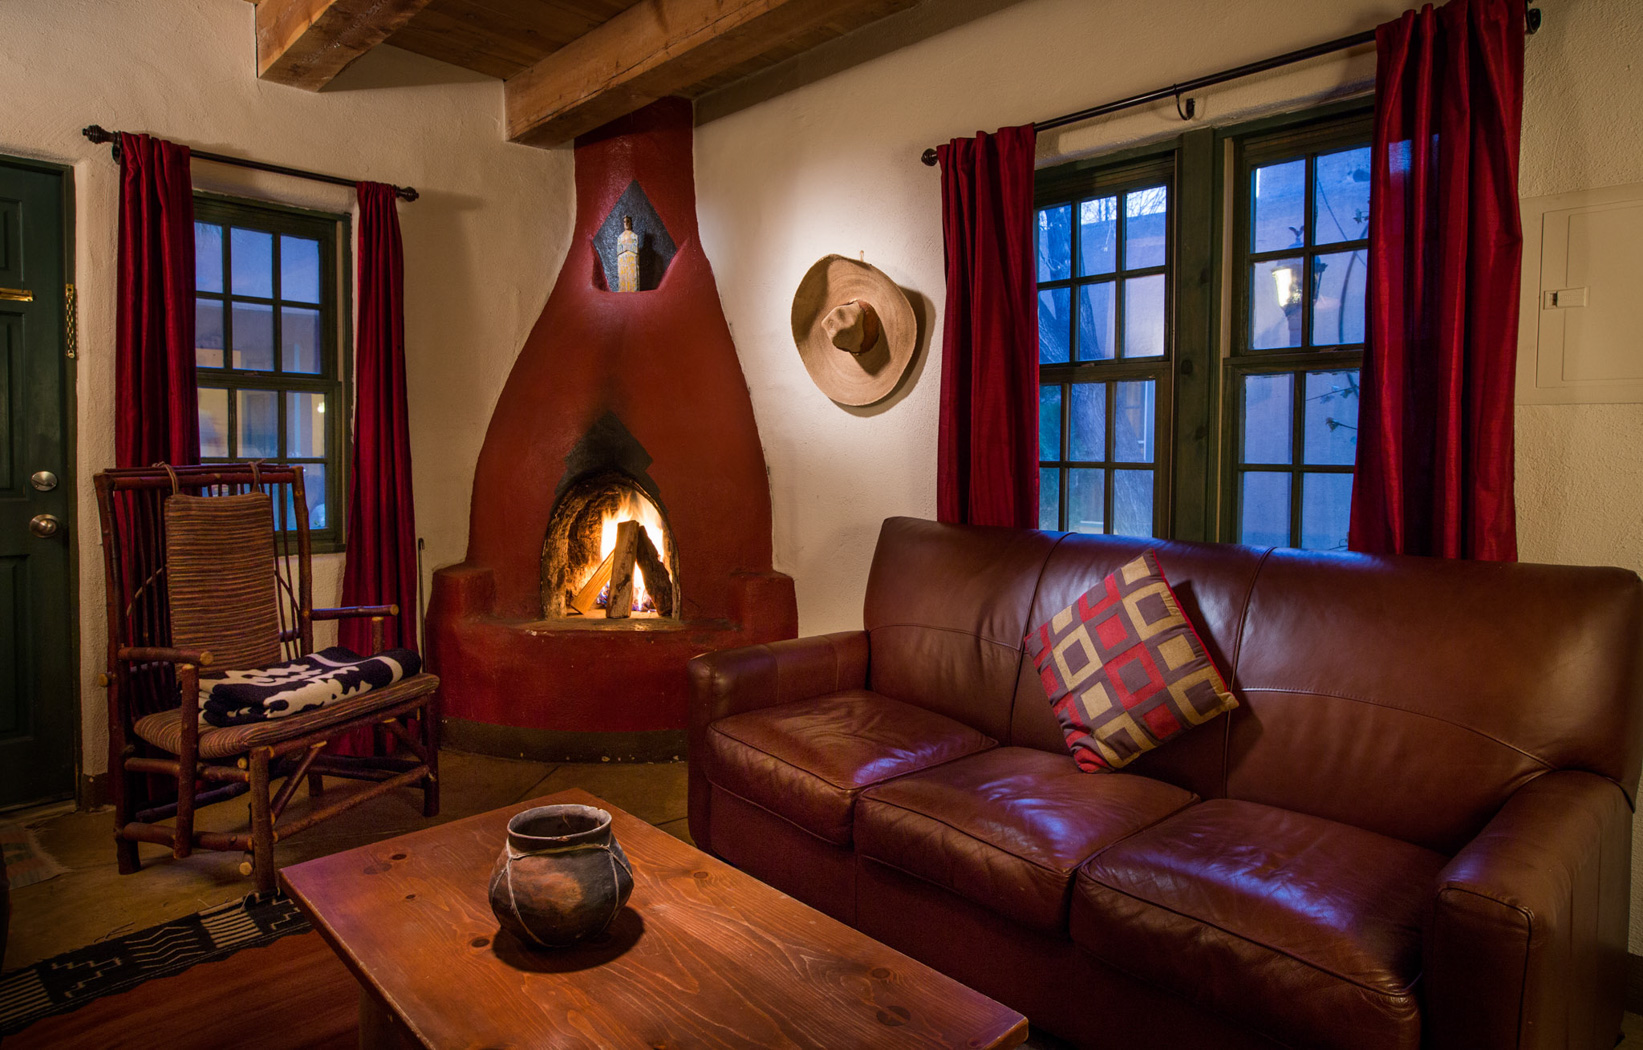 Historic Hotels In Sanfe Fe Nm Rooms Las Palomas Hotel